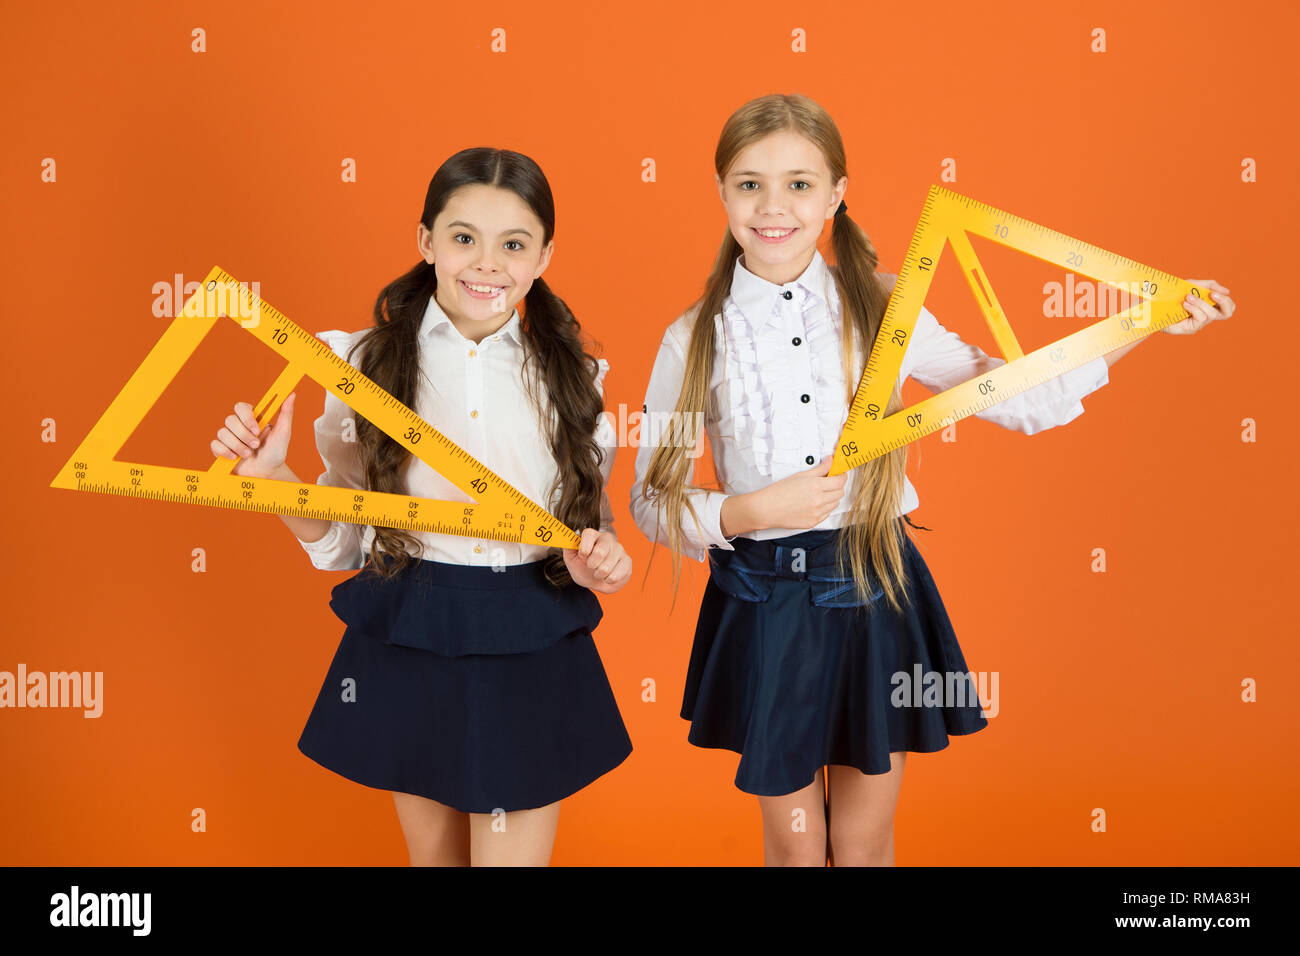 Education and school concept. School students learning geometry. Kids school uniform on orange background. Pupil cute girls with big rulers. Geometry school subject. Drawing with ruler chalkboard. - Stock Image